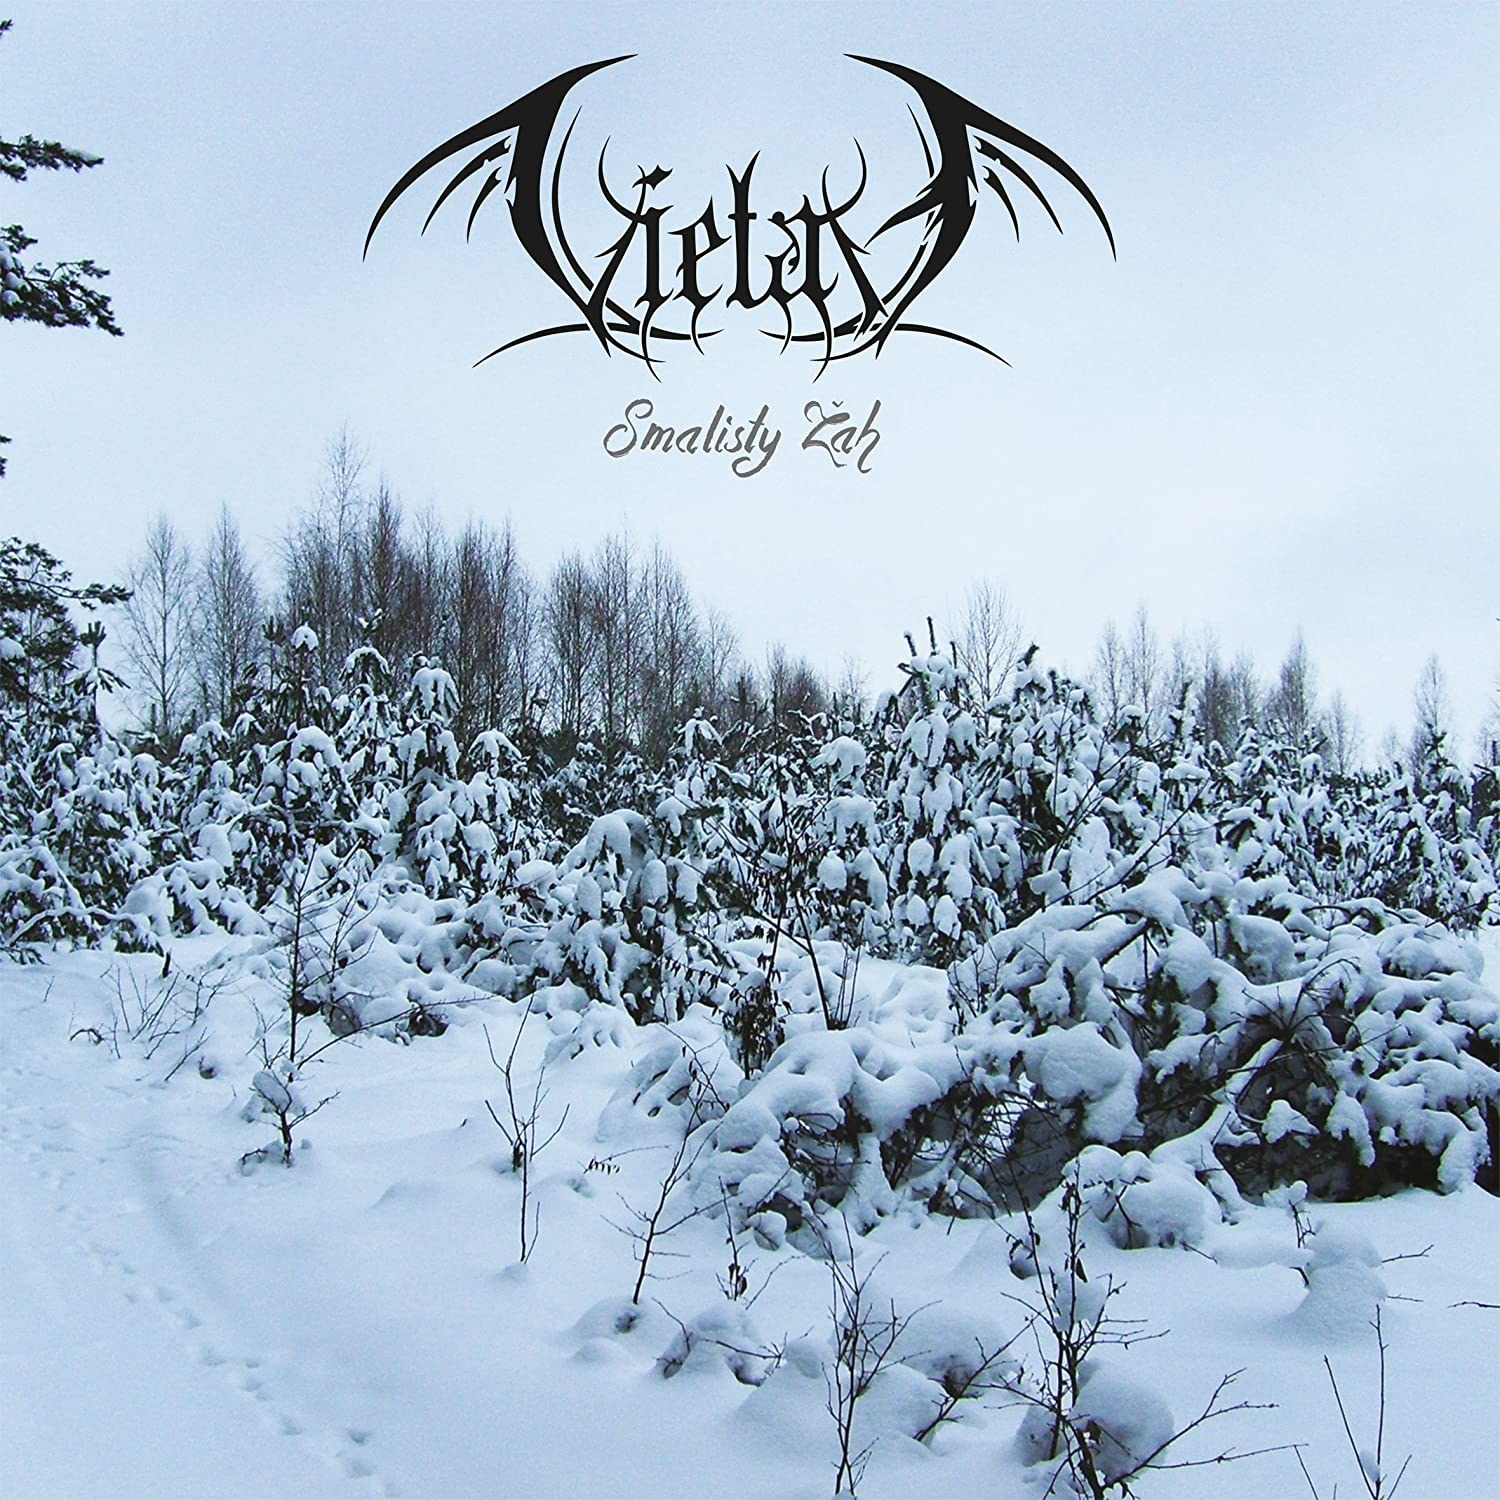 Review for Vietah - Smalisty Zah